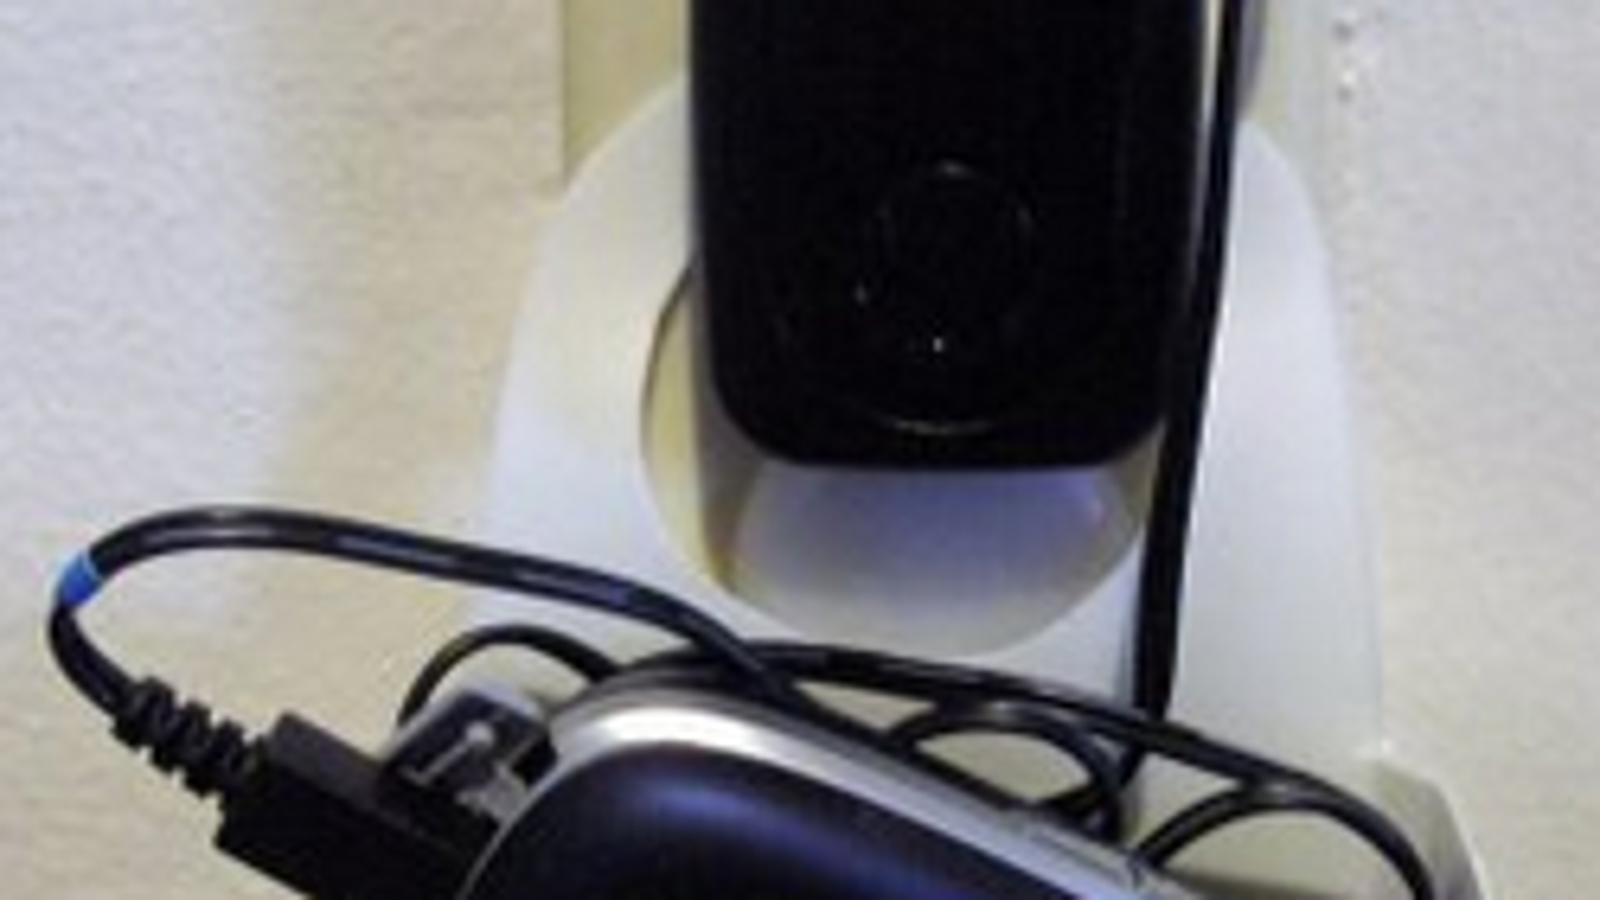 Outlet Hanging Charge Station For Your Small Gadgets